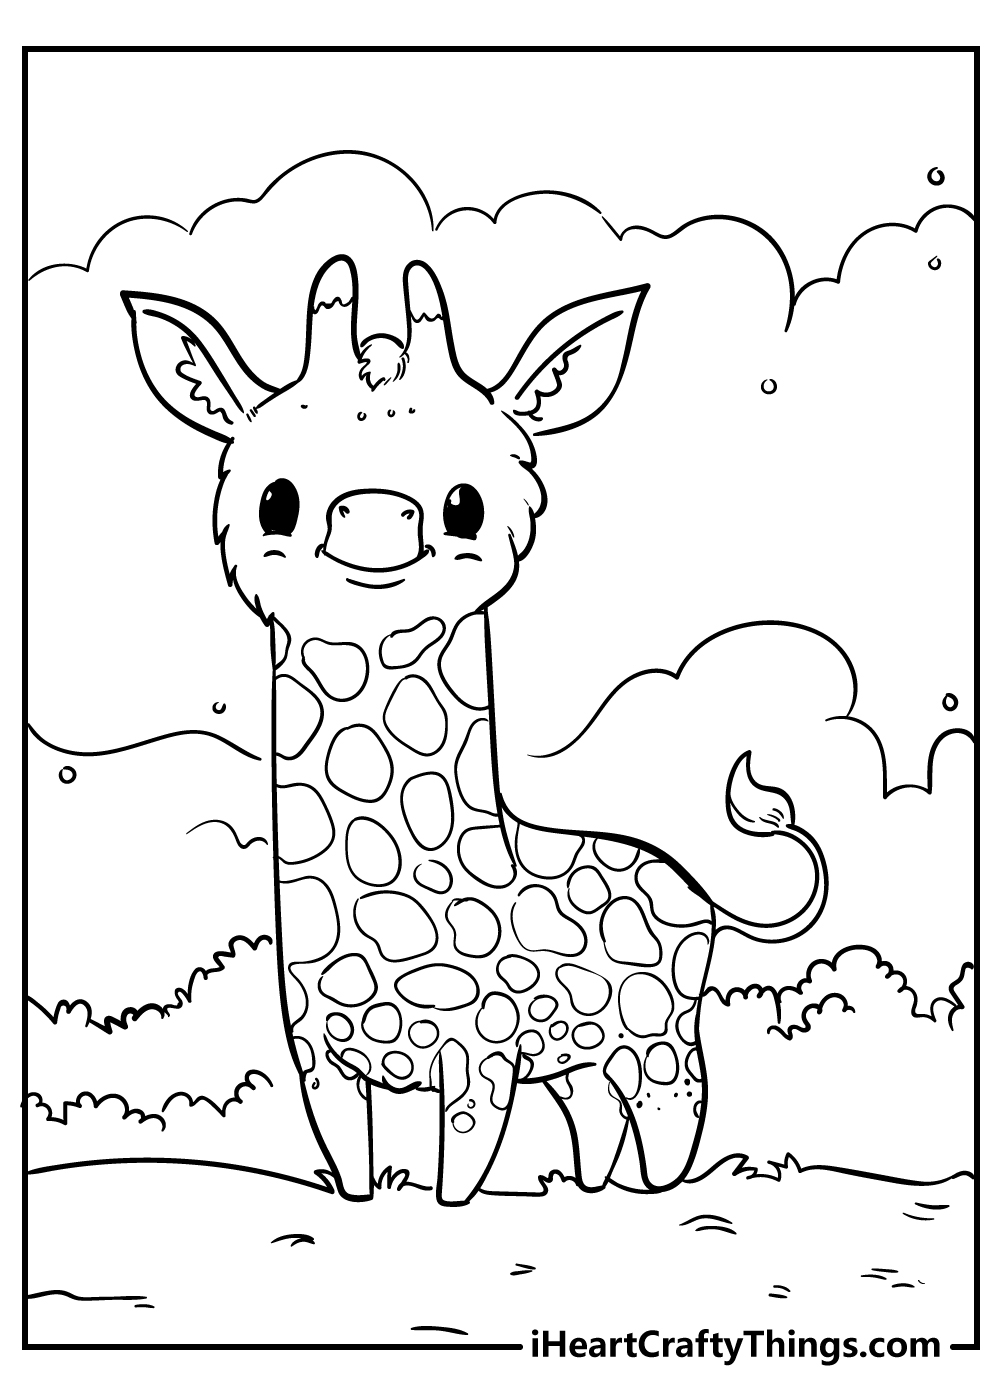 cute giraffe animal coloring pages free download